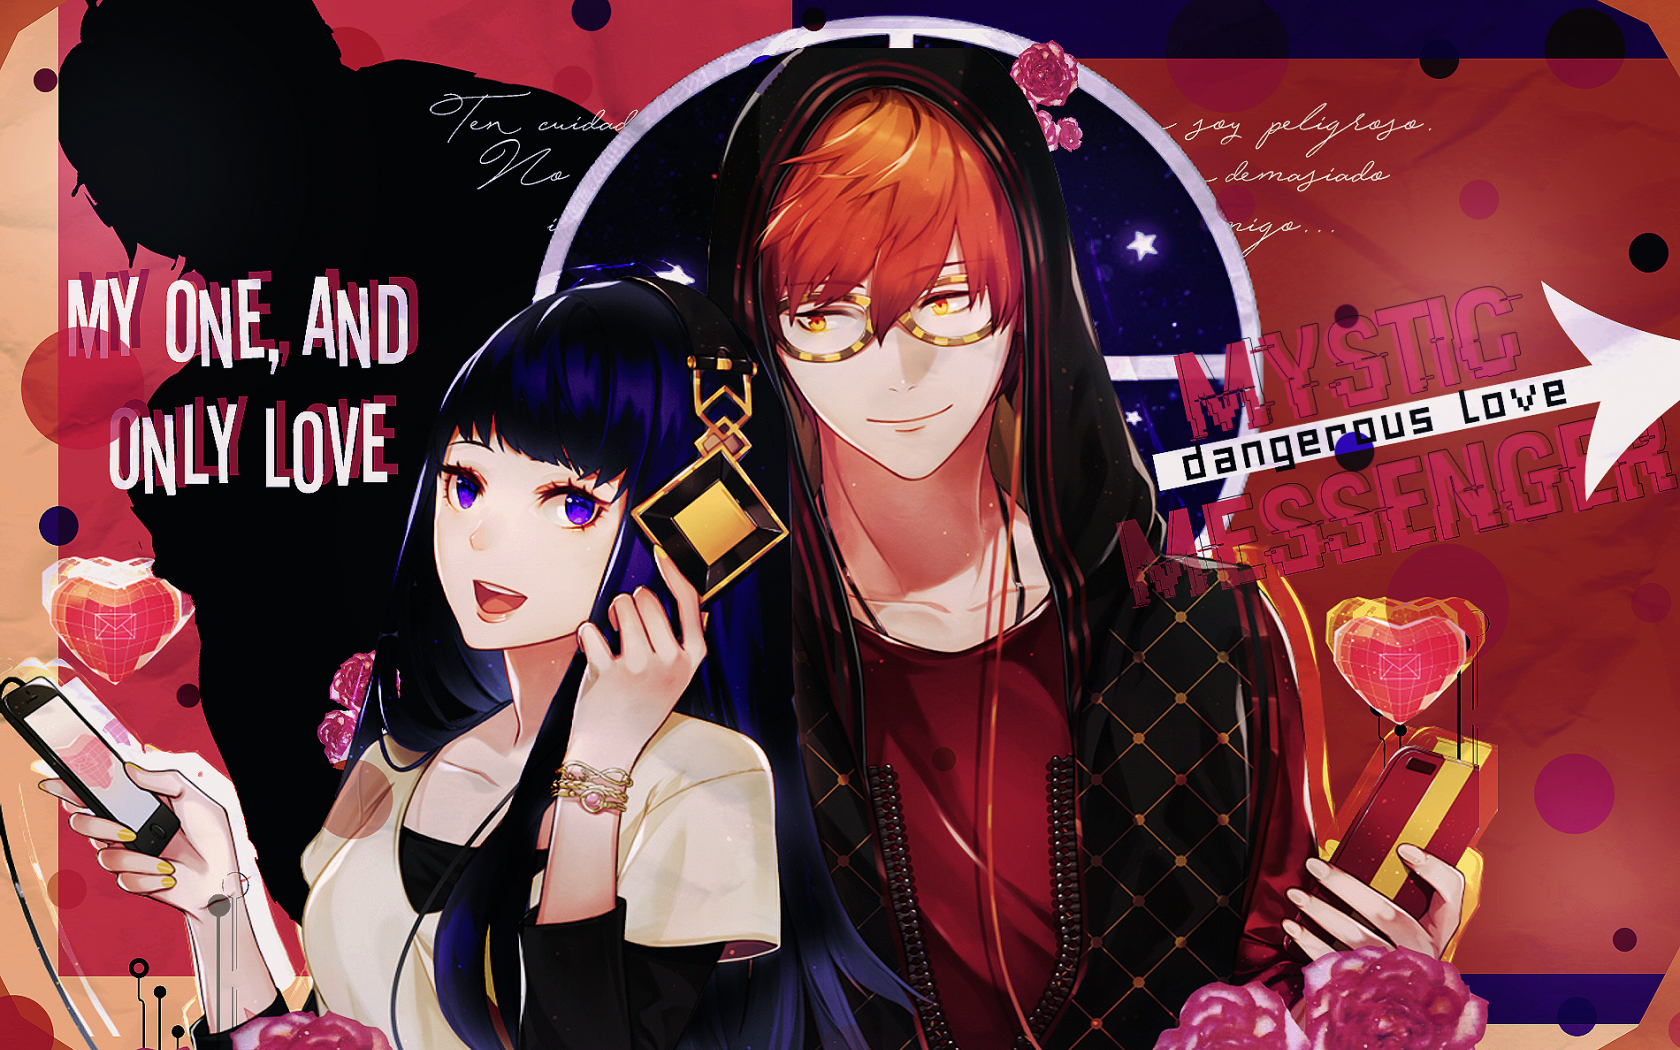 Free Download Mi One And Only Love Mystic Messenger Wallpaper